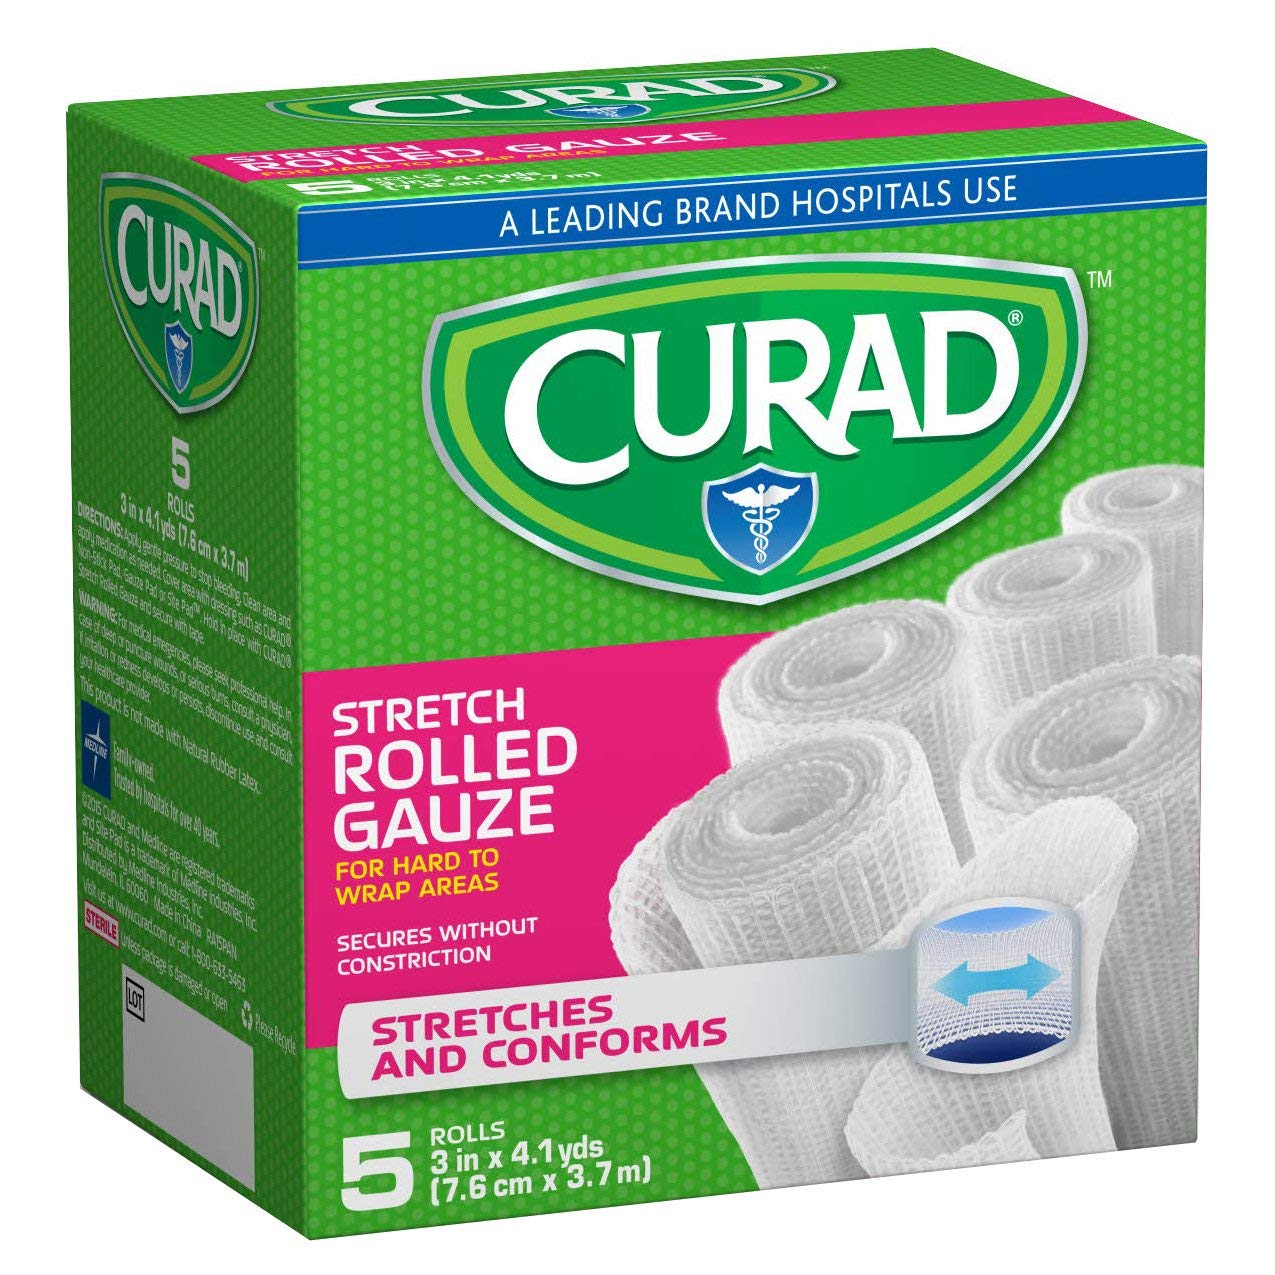 Curad Rolled Gauze 3 Inch x 4.1 Yards, 5 Count (Pack of 6)